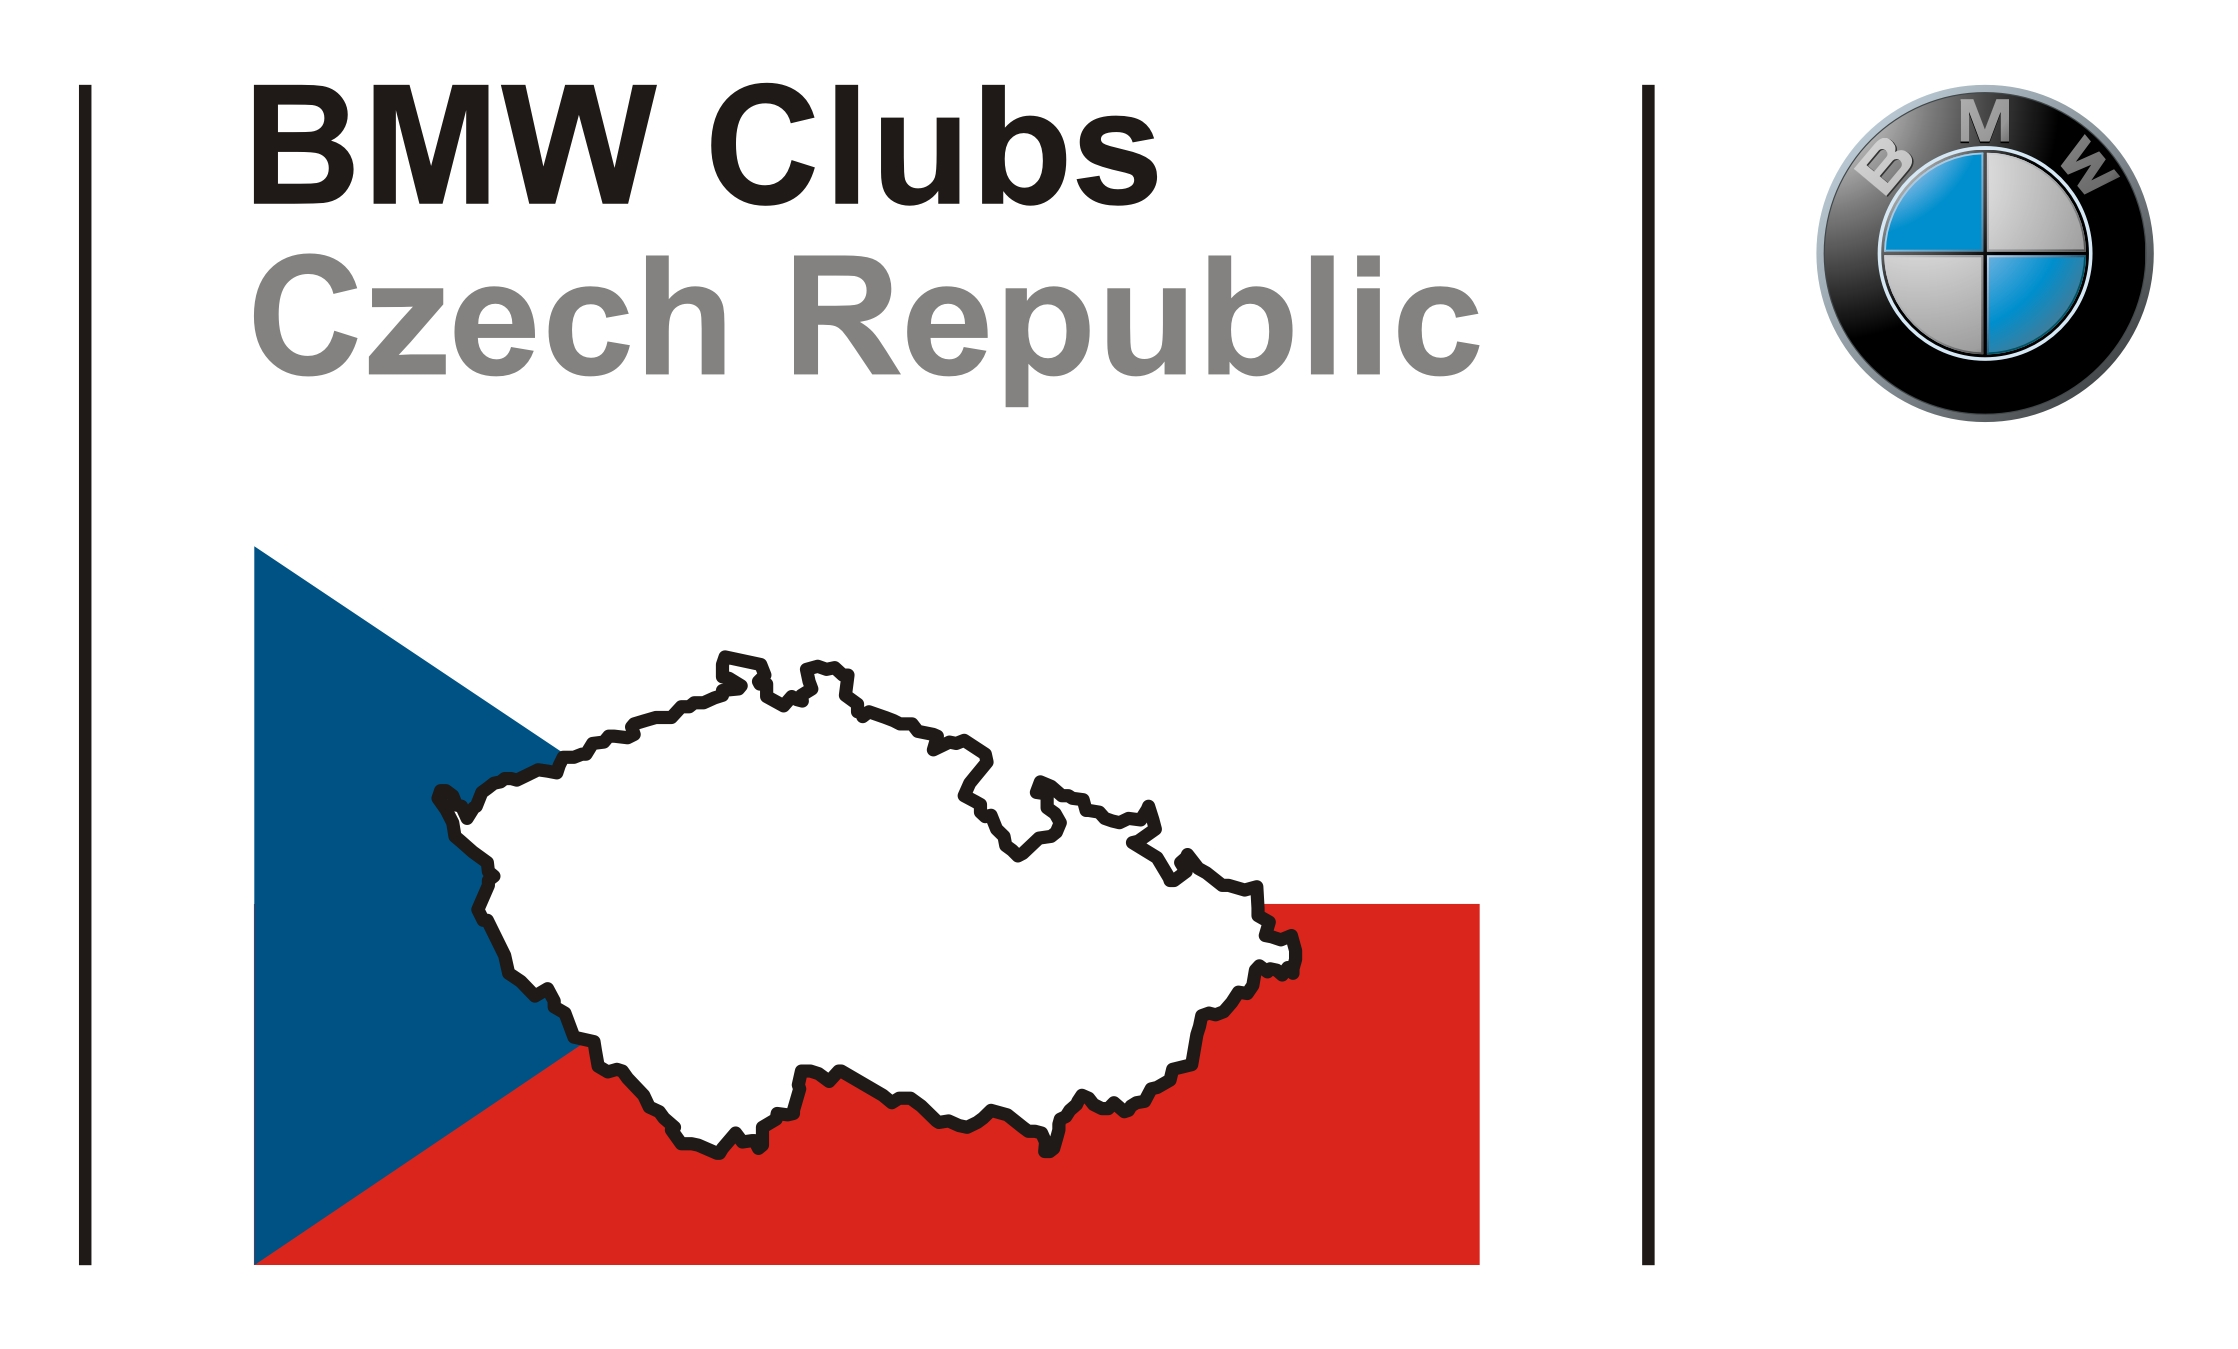 BMW Clubs Czech Republic